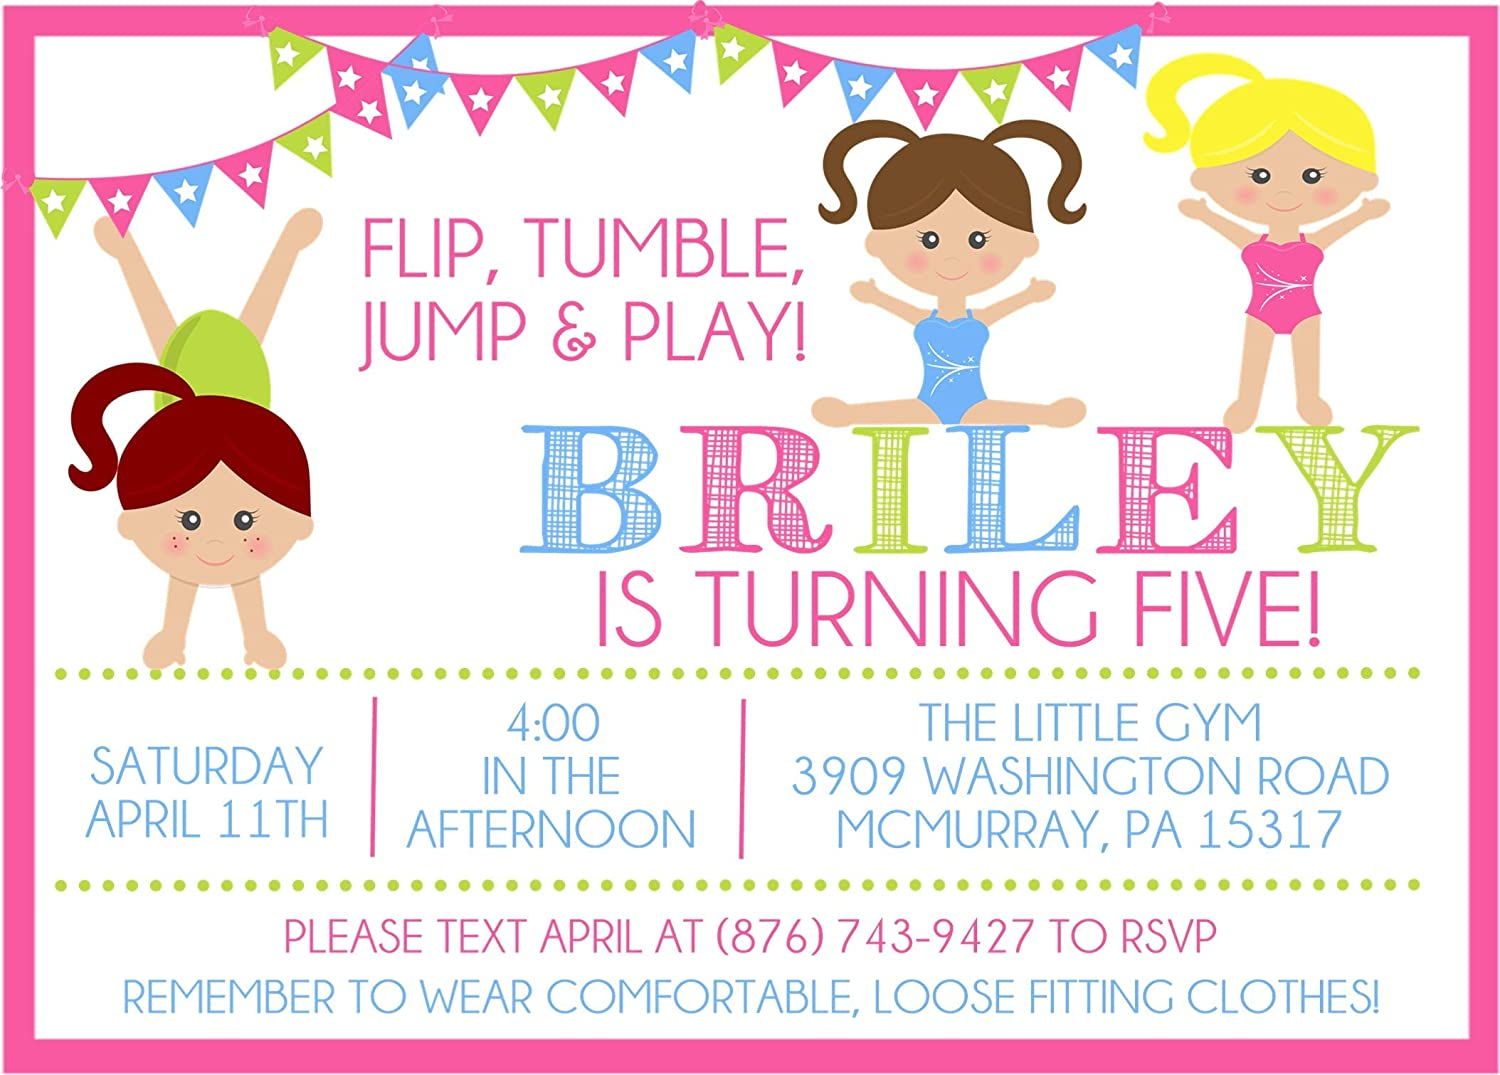 Gymnastics Birthday Party Invitations For Max 69% OFF Today's only Girls Envelopes With